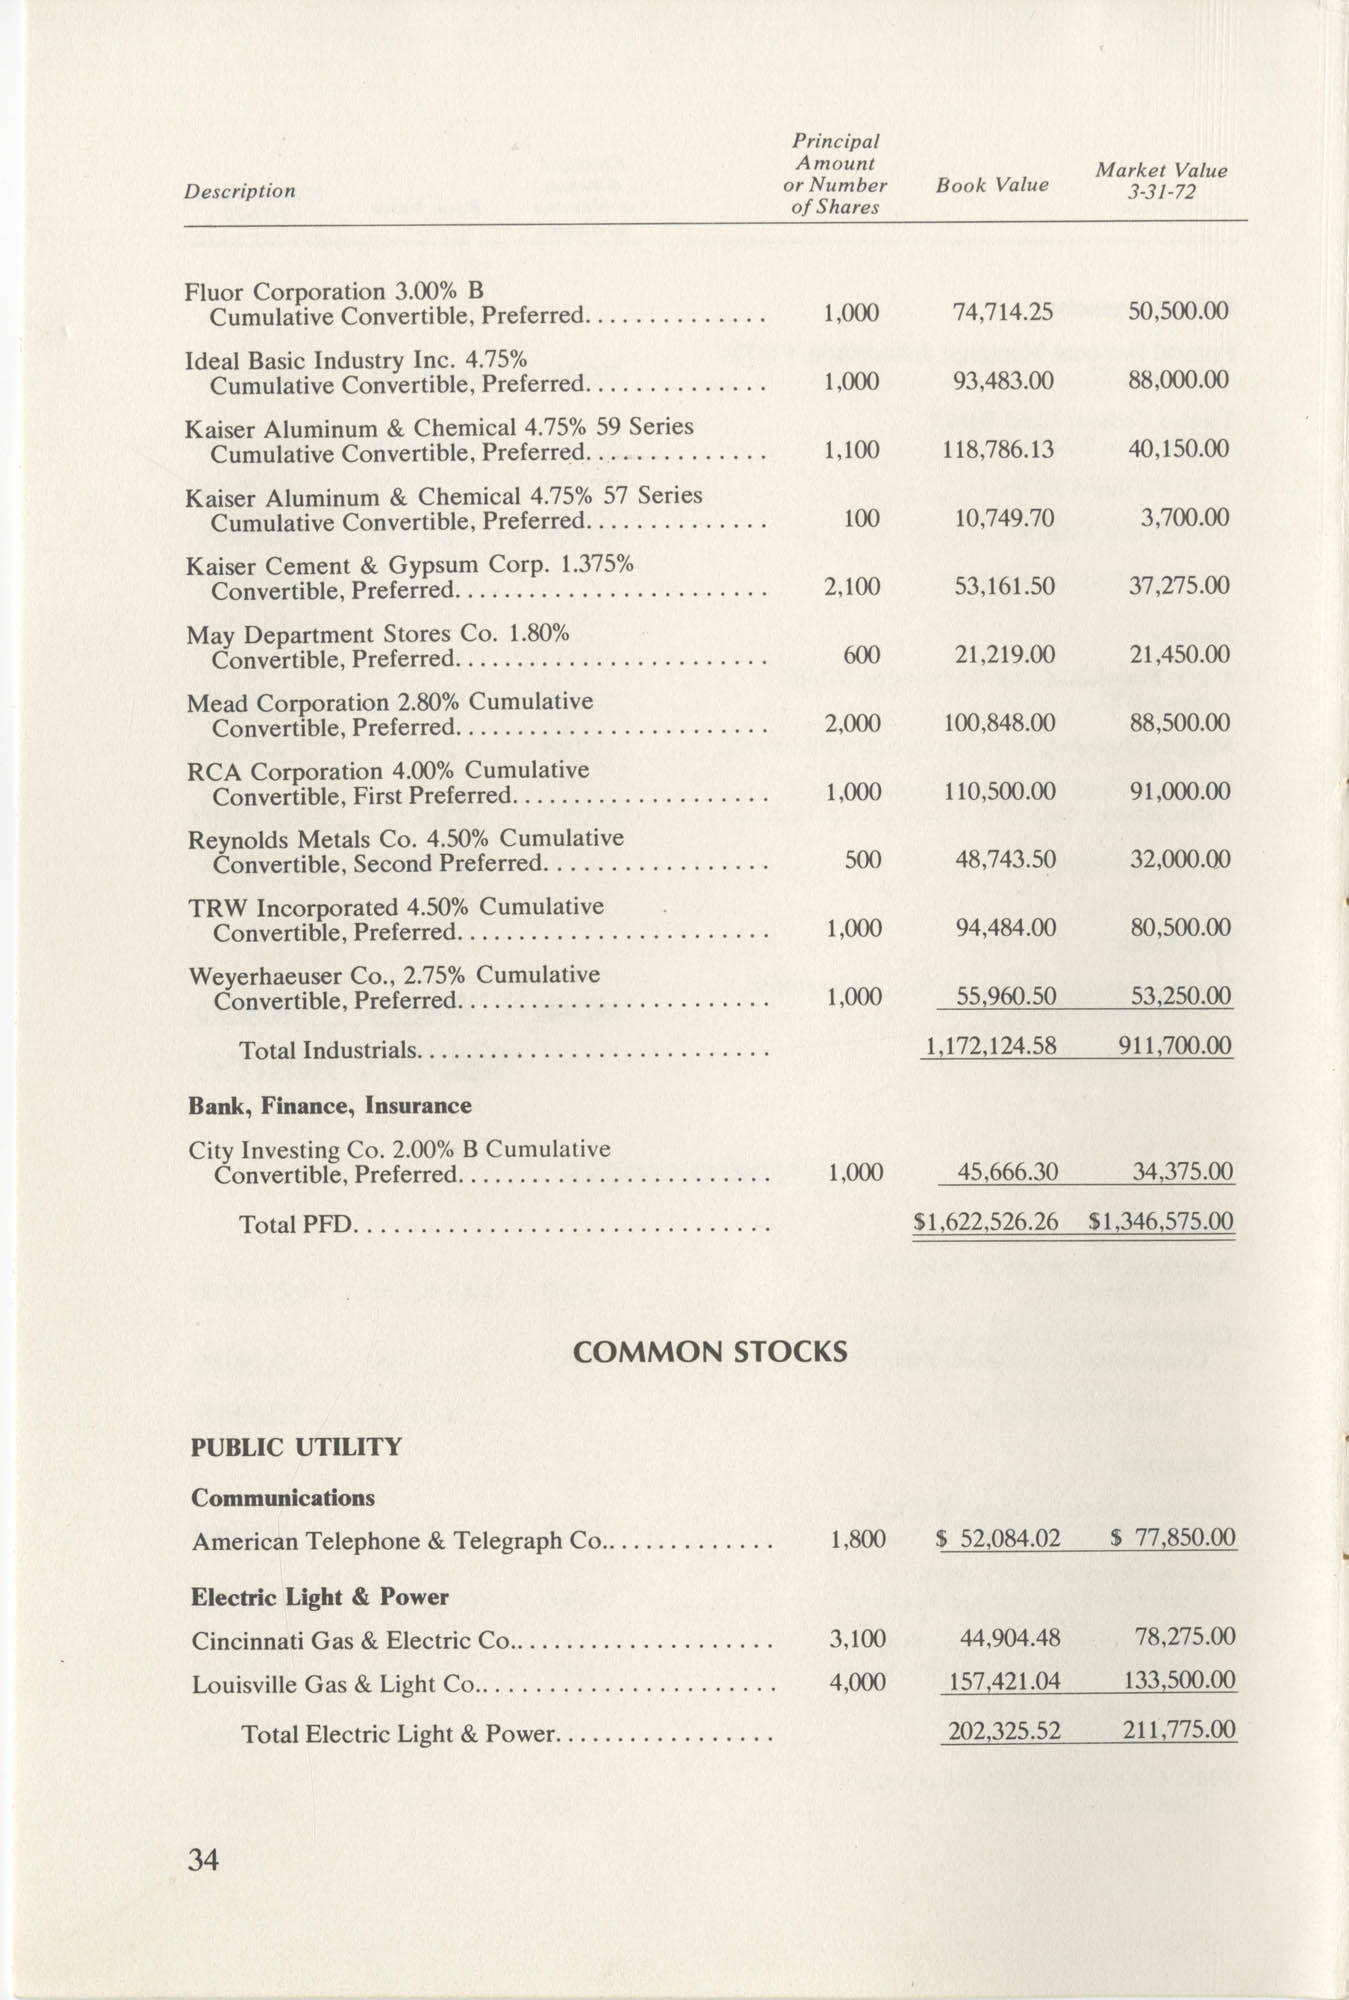 Southern Education Foundation, Annual Report 1971-1972, Page 34